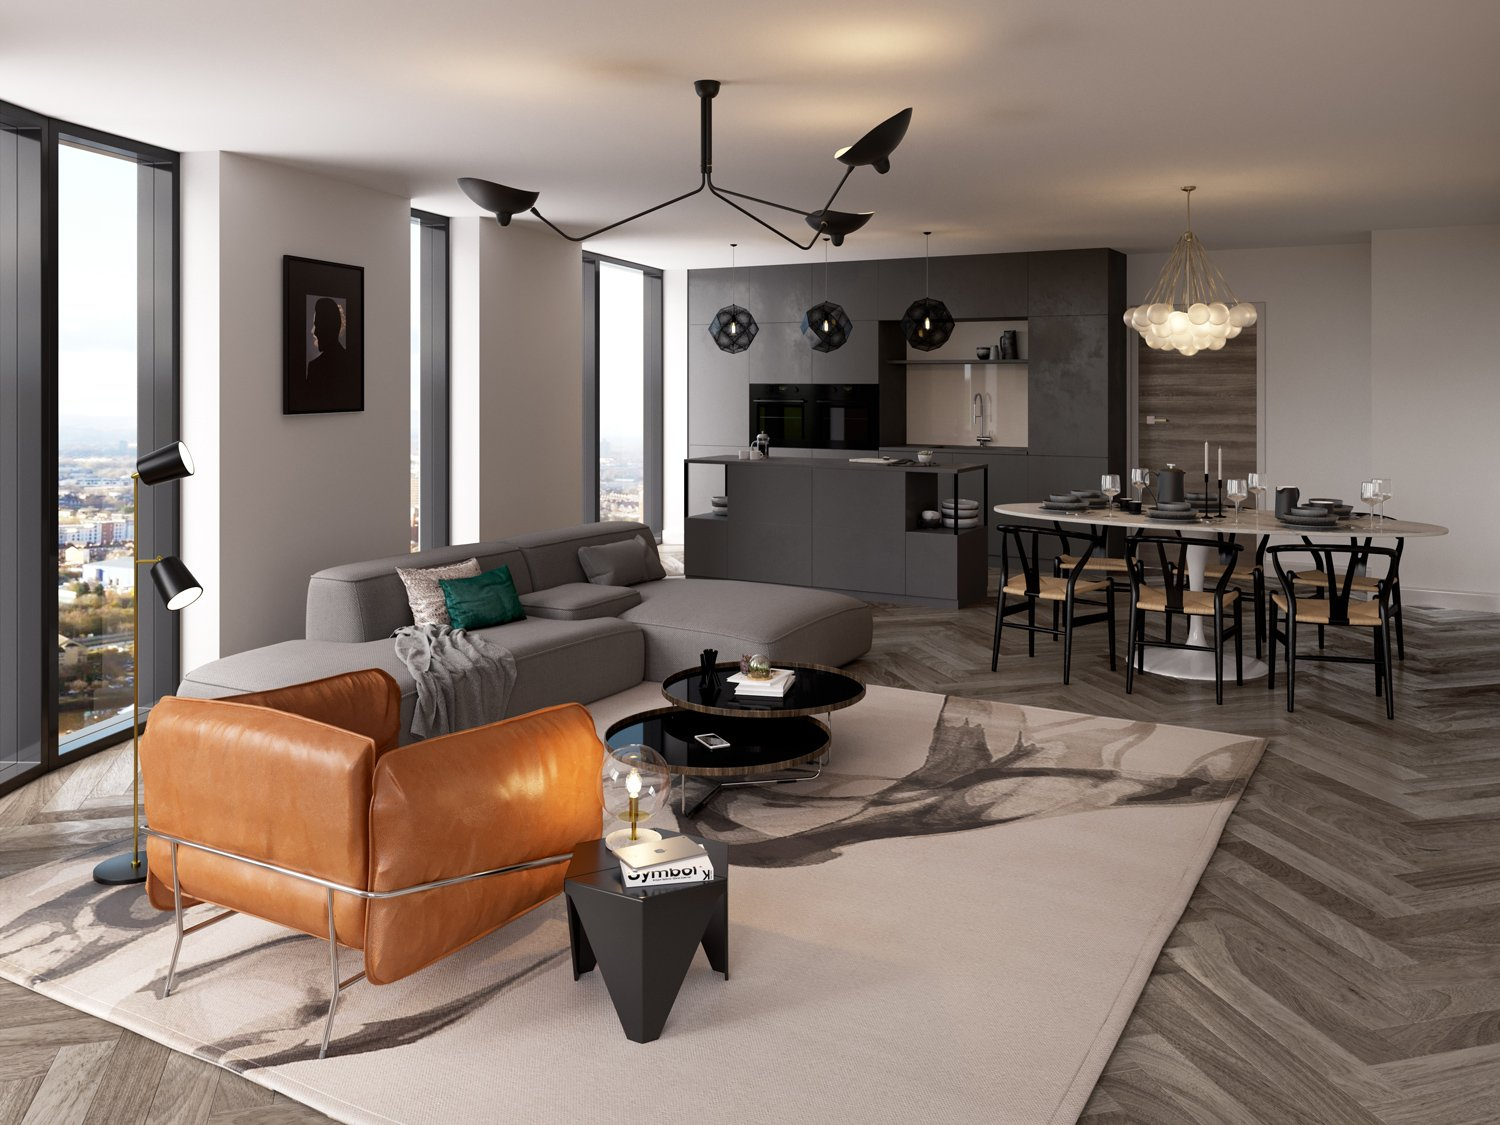 Interior Lifestyle – Clippers Quay